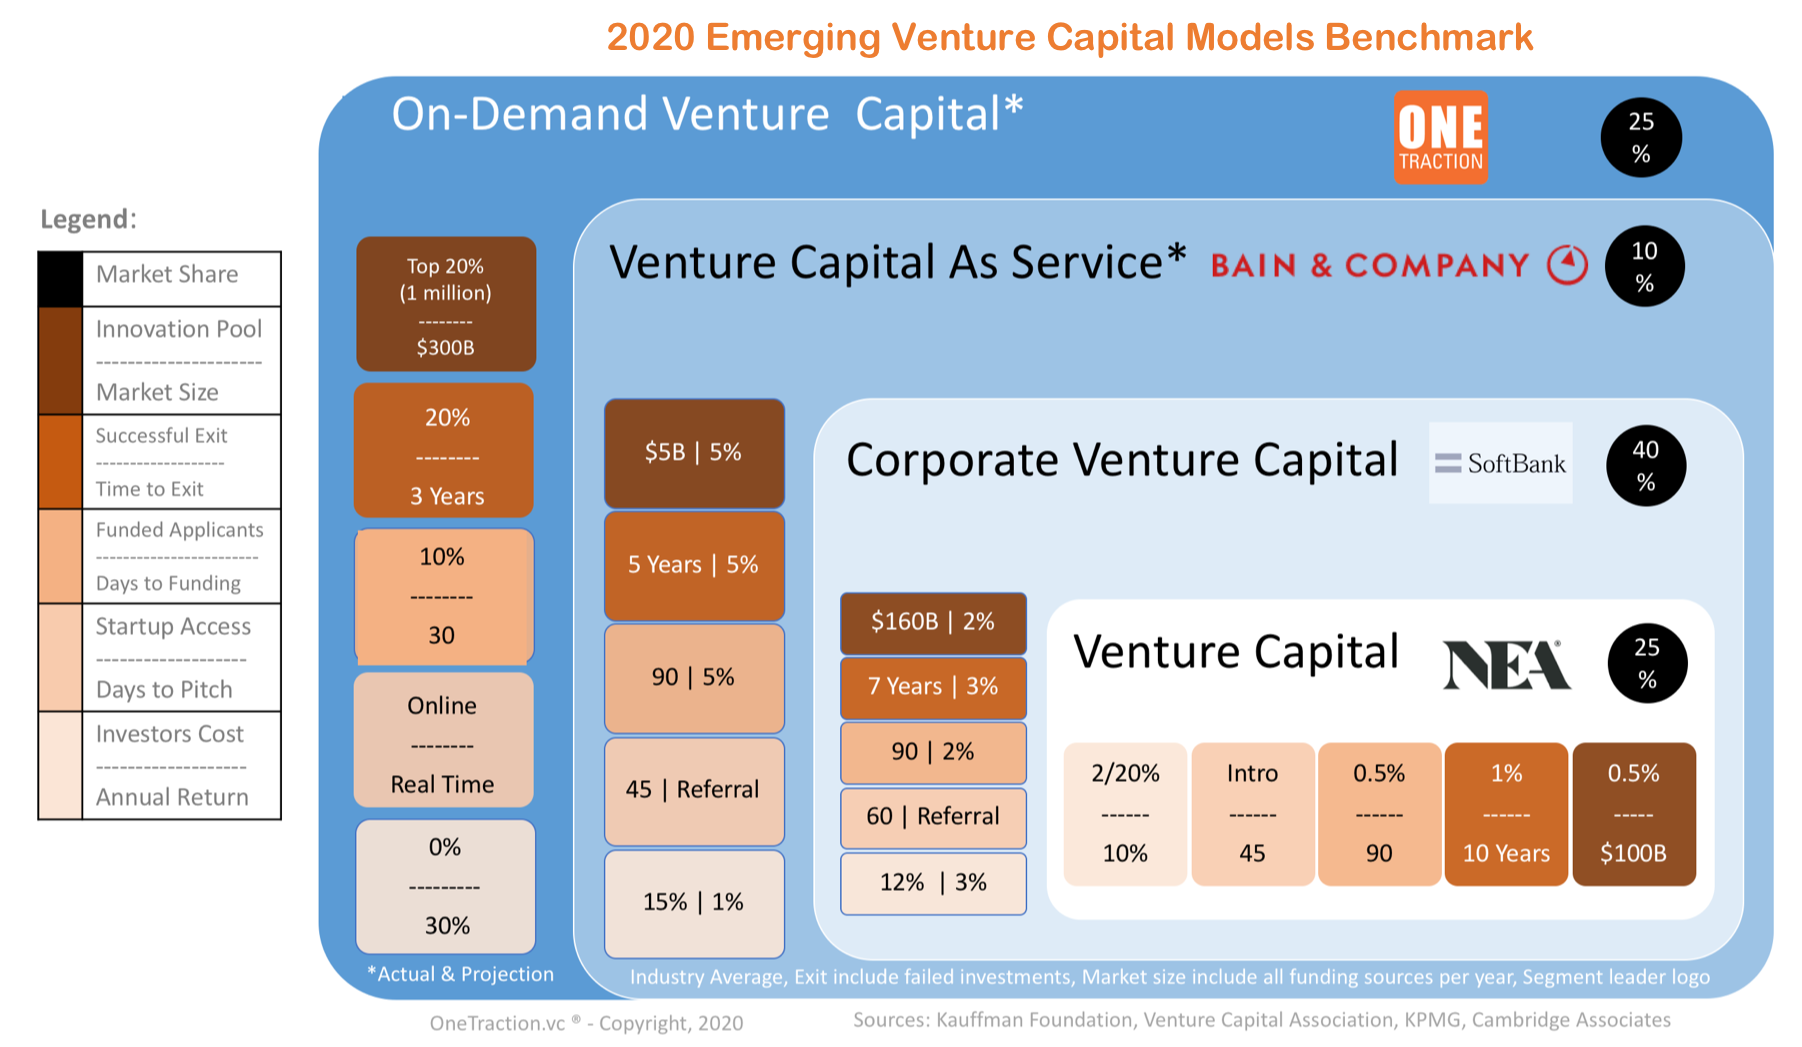 Figure 1: Venture Capital Models